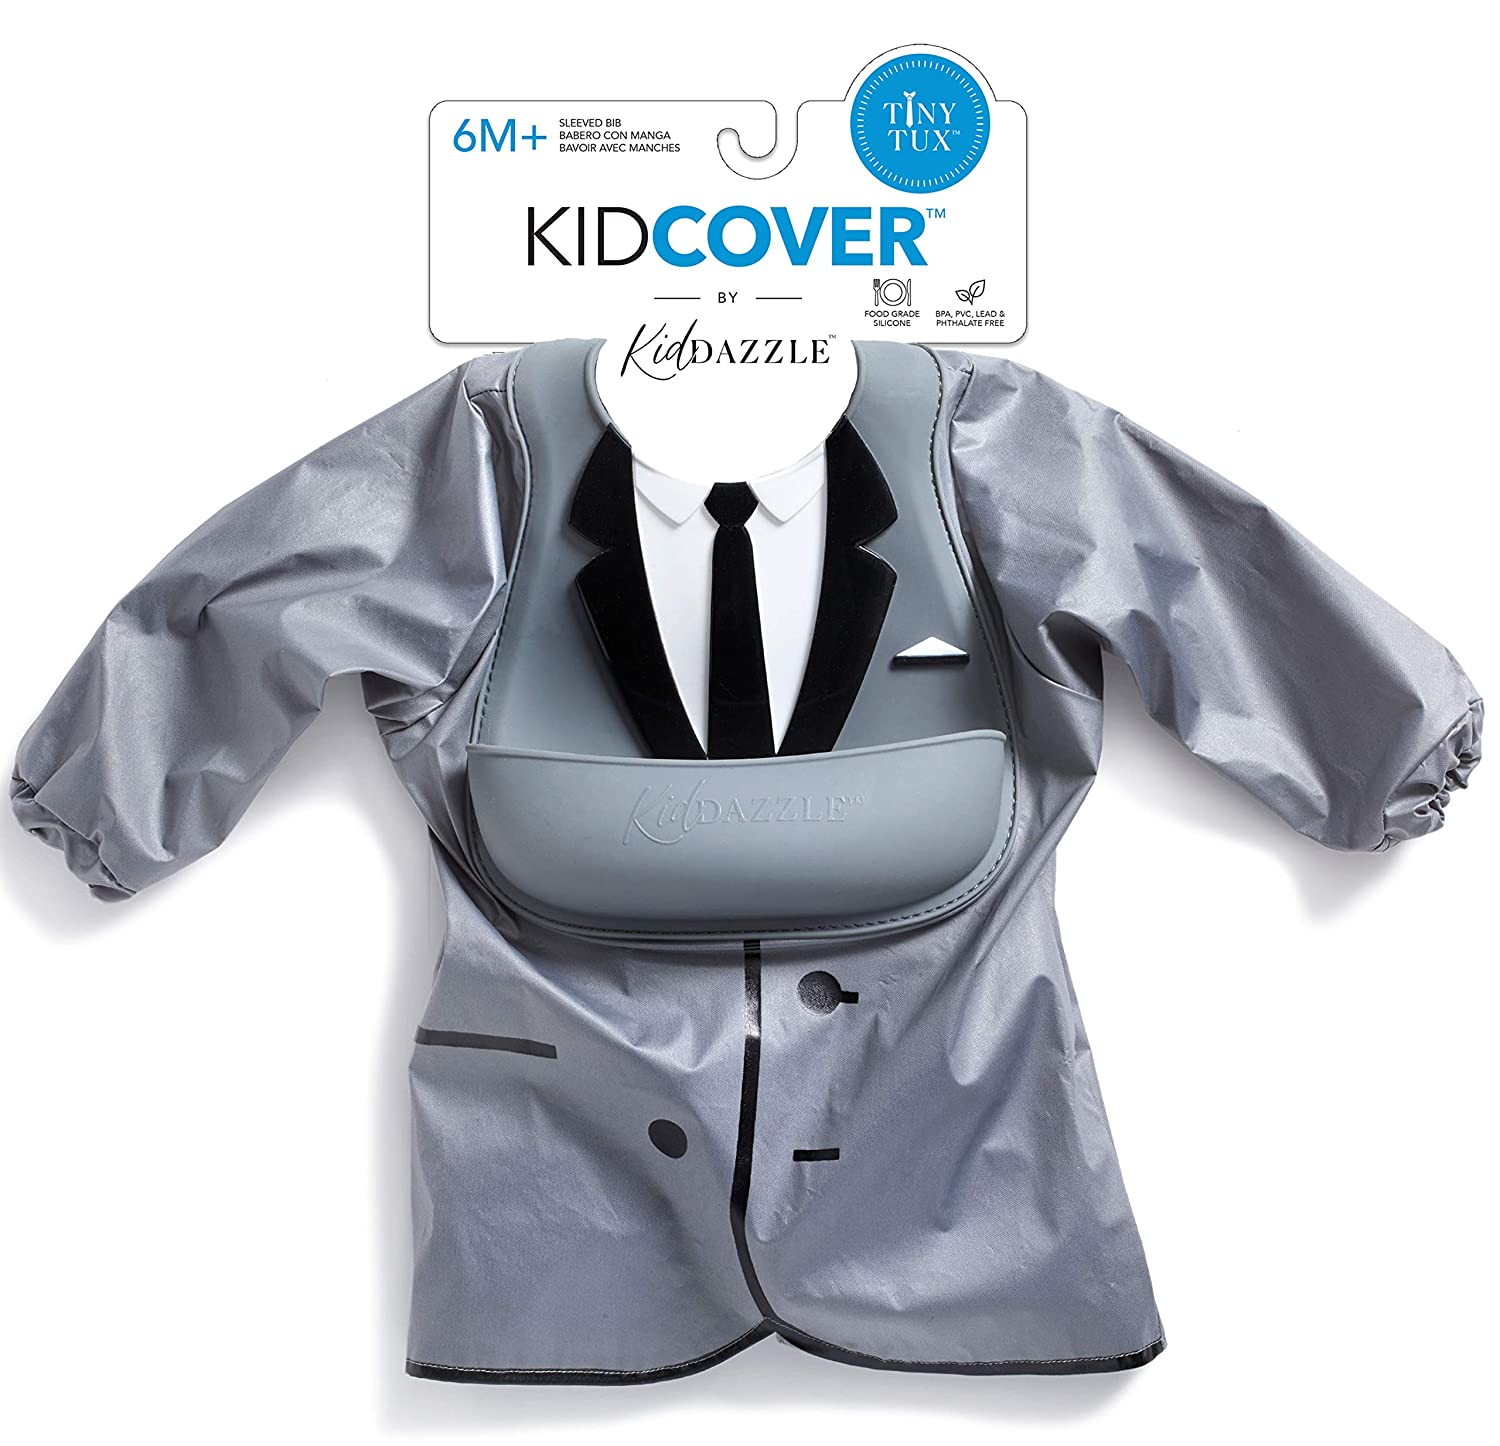 KidDazzle One-Piece Tiny Tux KidCover- Cute Silicone Baby Boy Bib - Adjustable Size - Waterproof and Stain Resistant to Baby Food - 6 Months and Older (Tiny Tux)